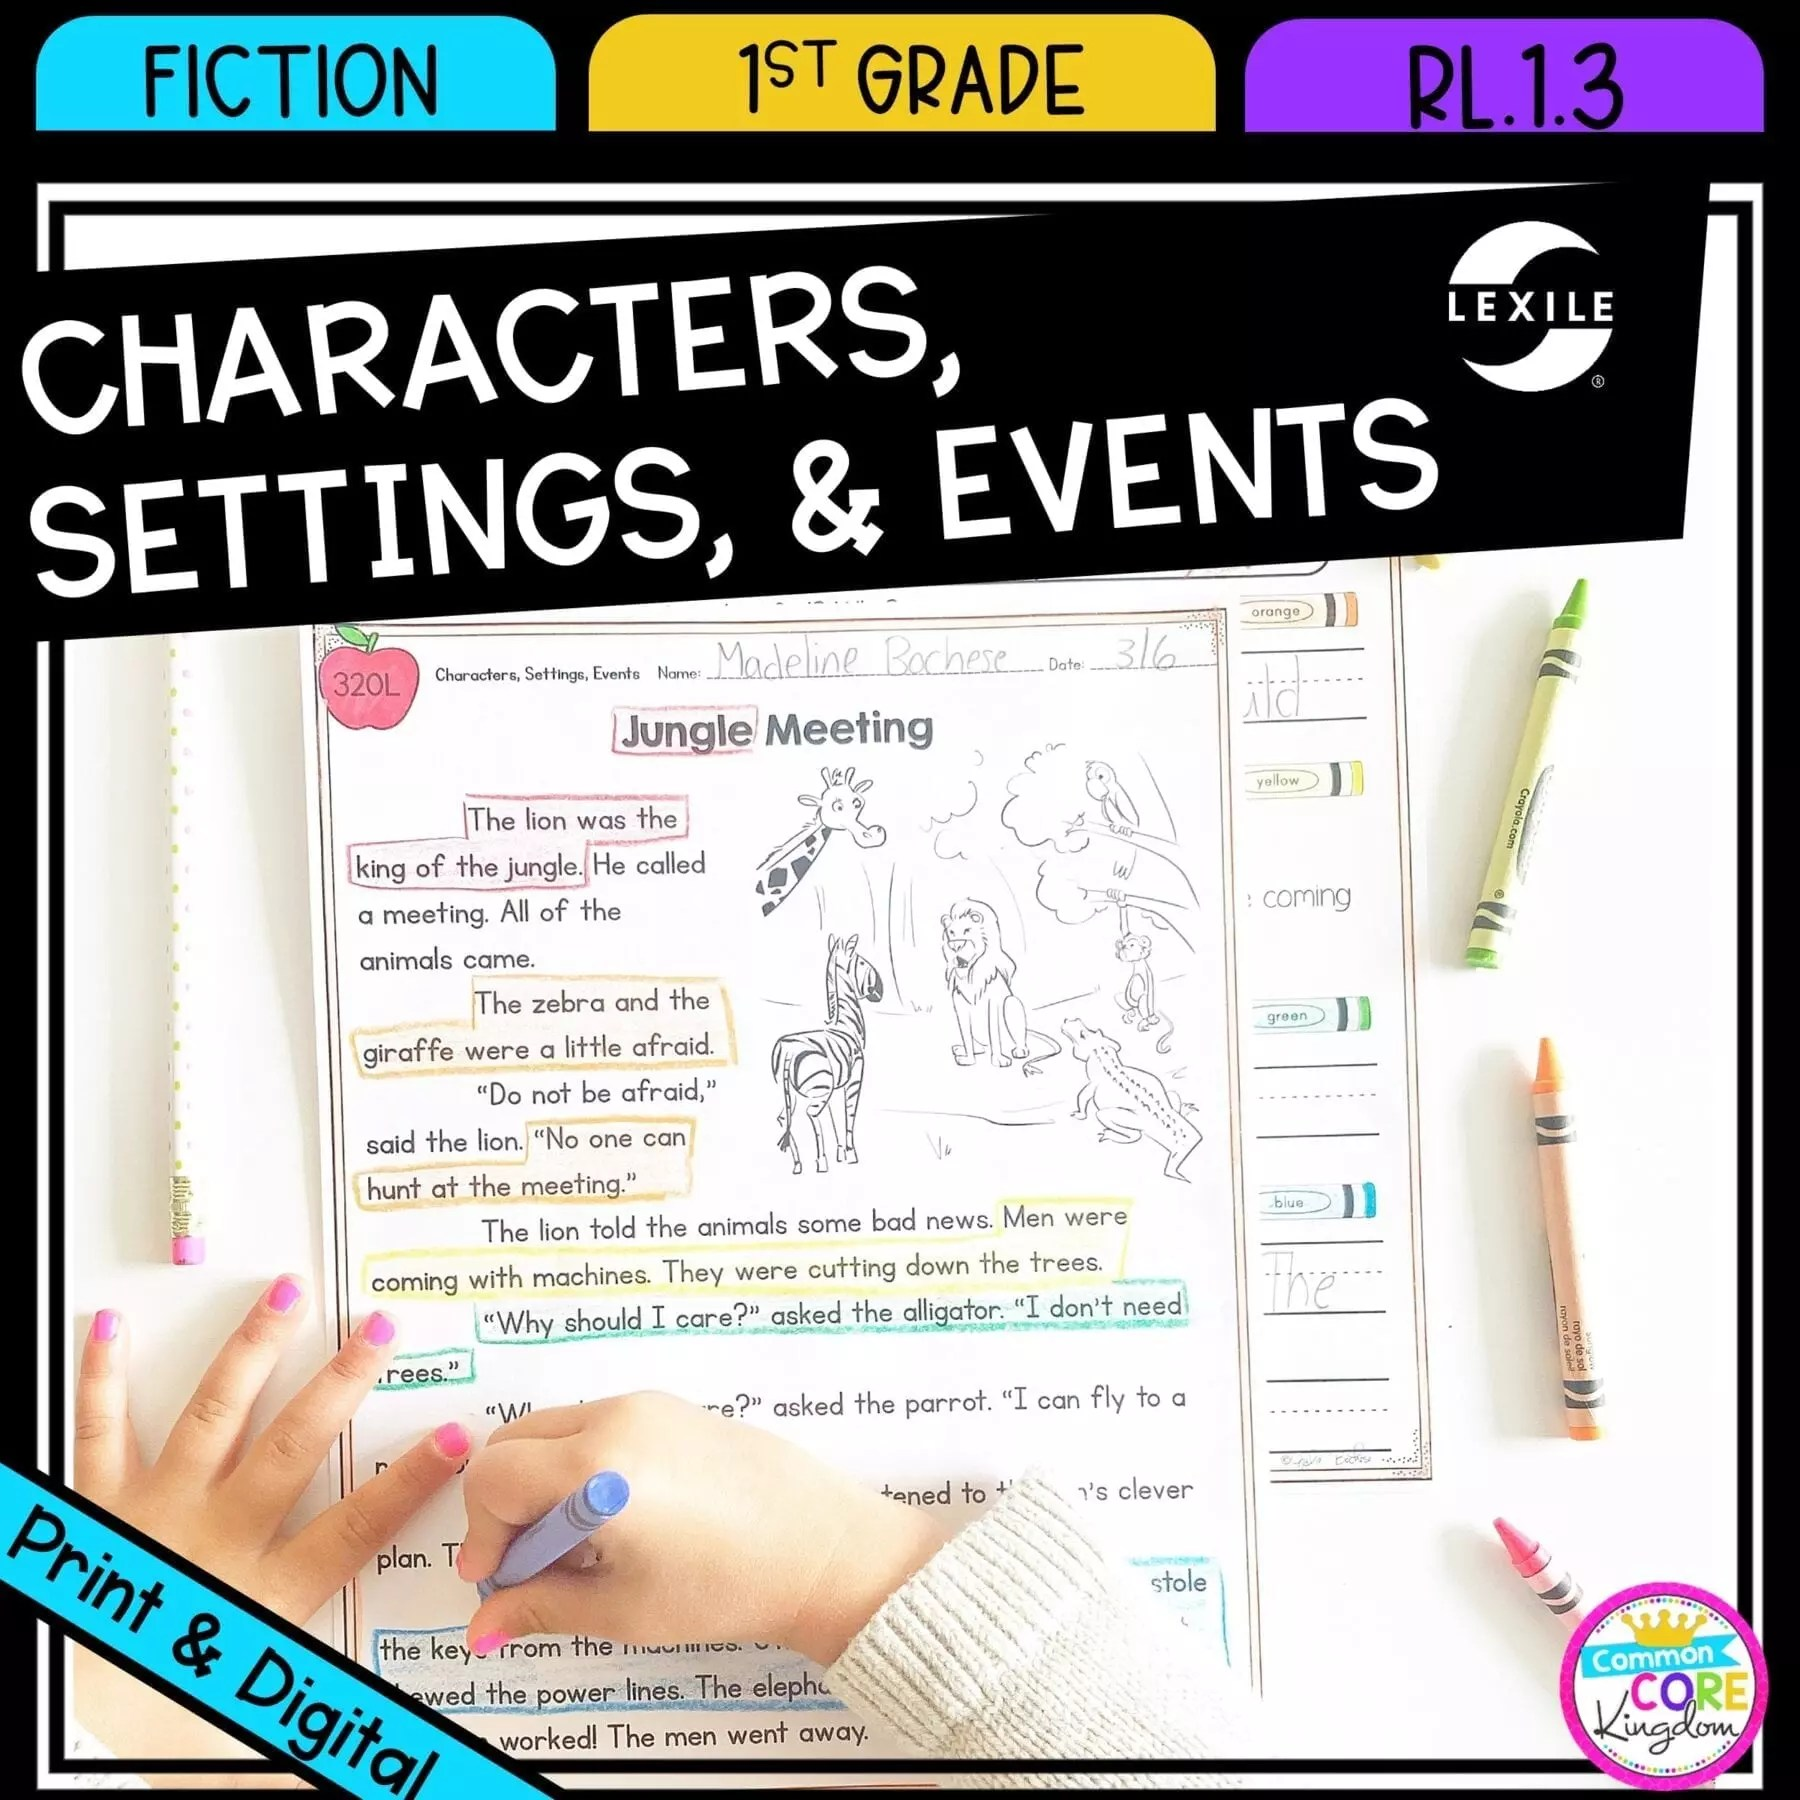 Characters Settings and Events - 1st Grade RL.1.3 Printable \u0026 Digital  Google Slides Distance Learning Pack   Common Core Kingdom [ 1800 x 1800 Pixel ]